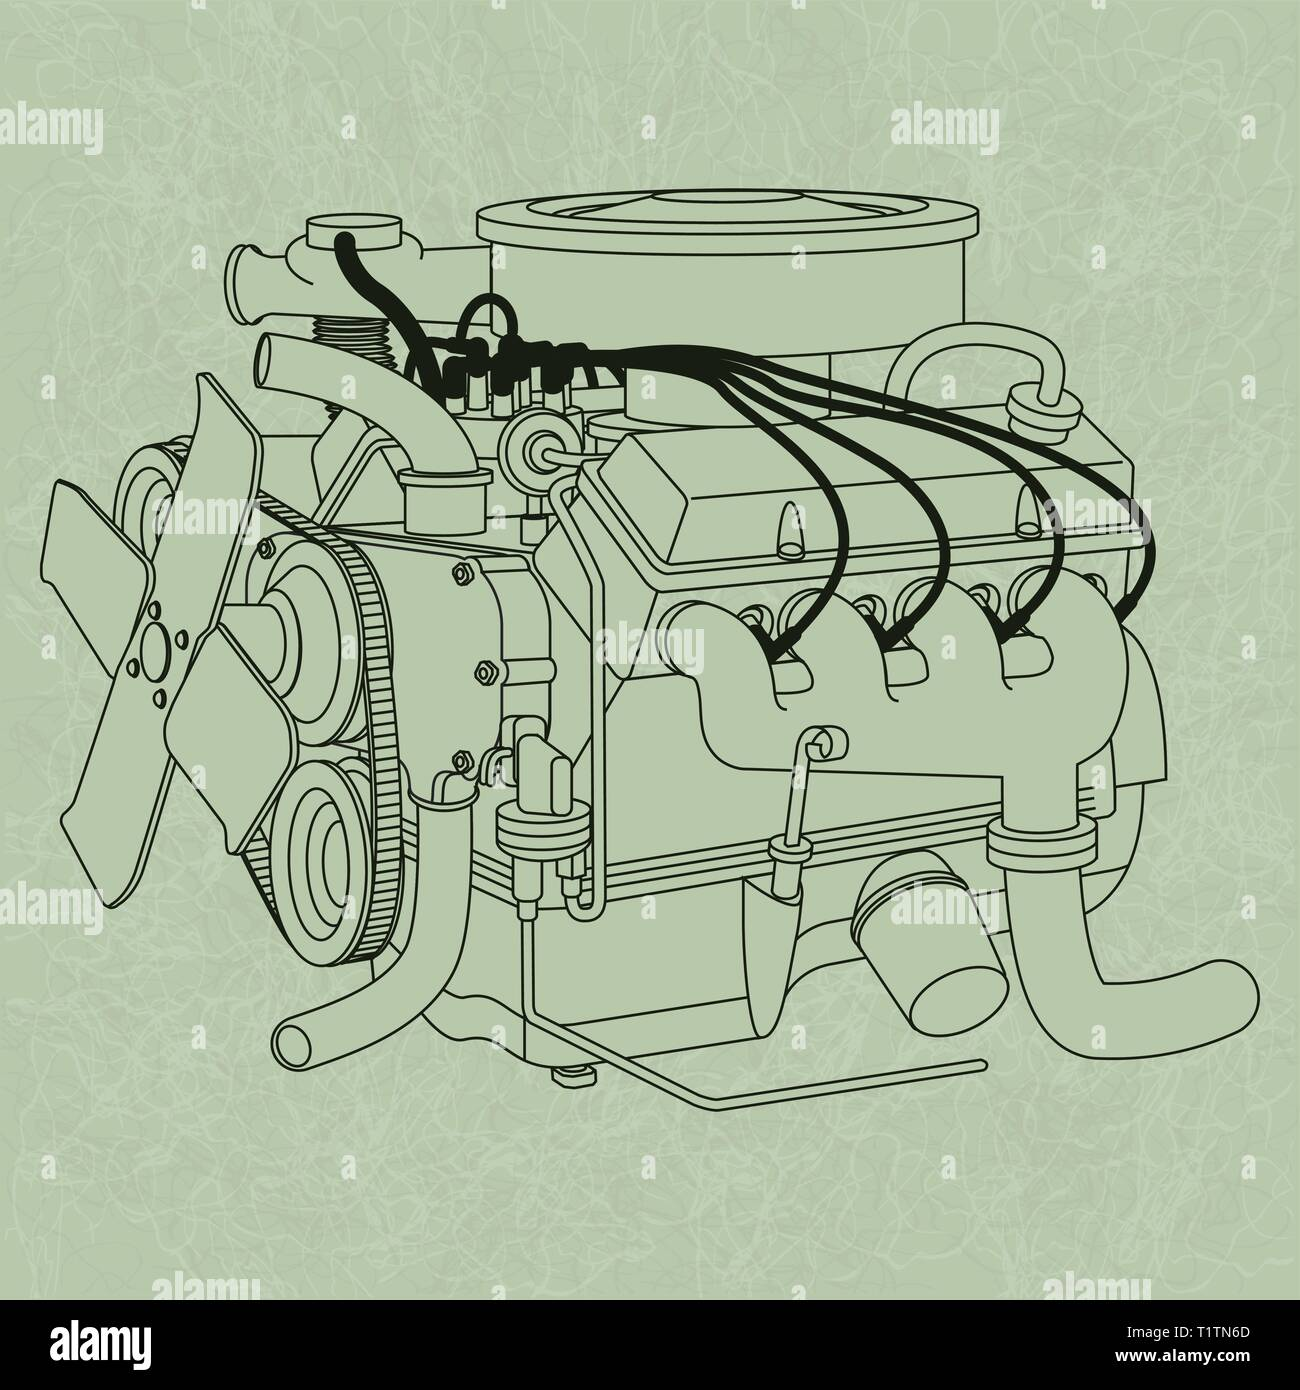 motor engine diagram wiring diagrams page Subaru 2.5 Engine Diagram